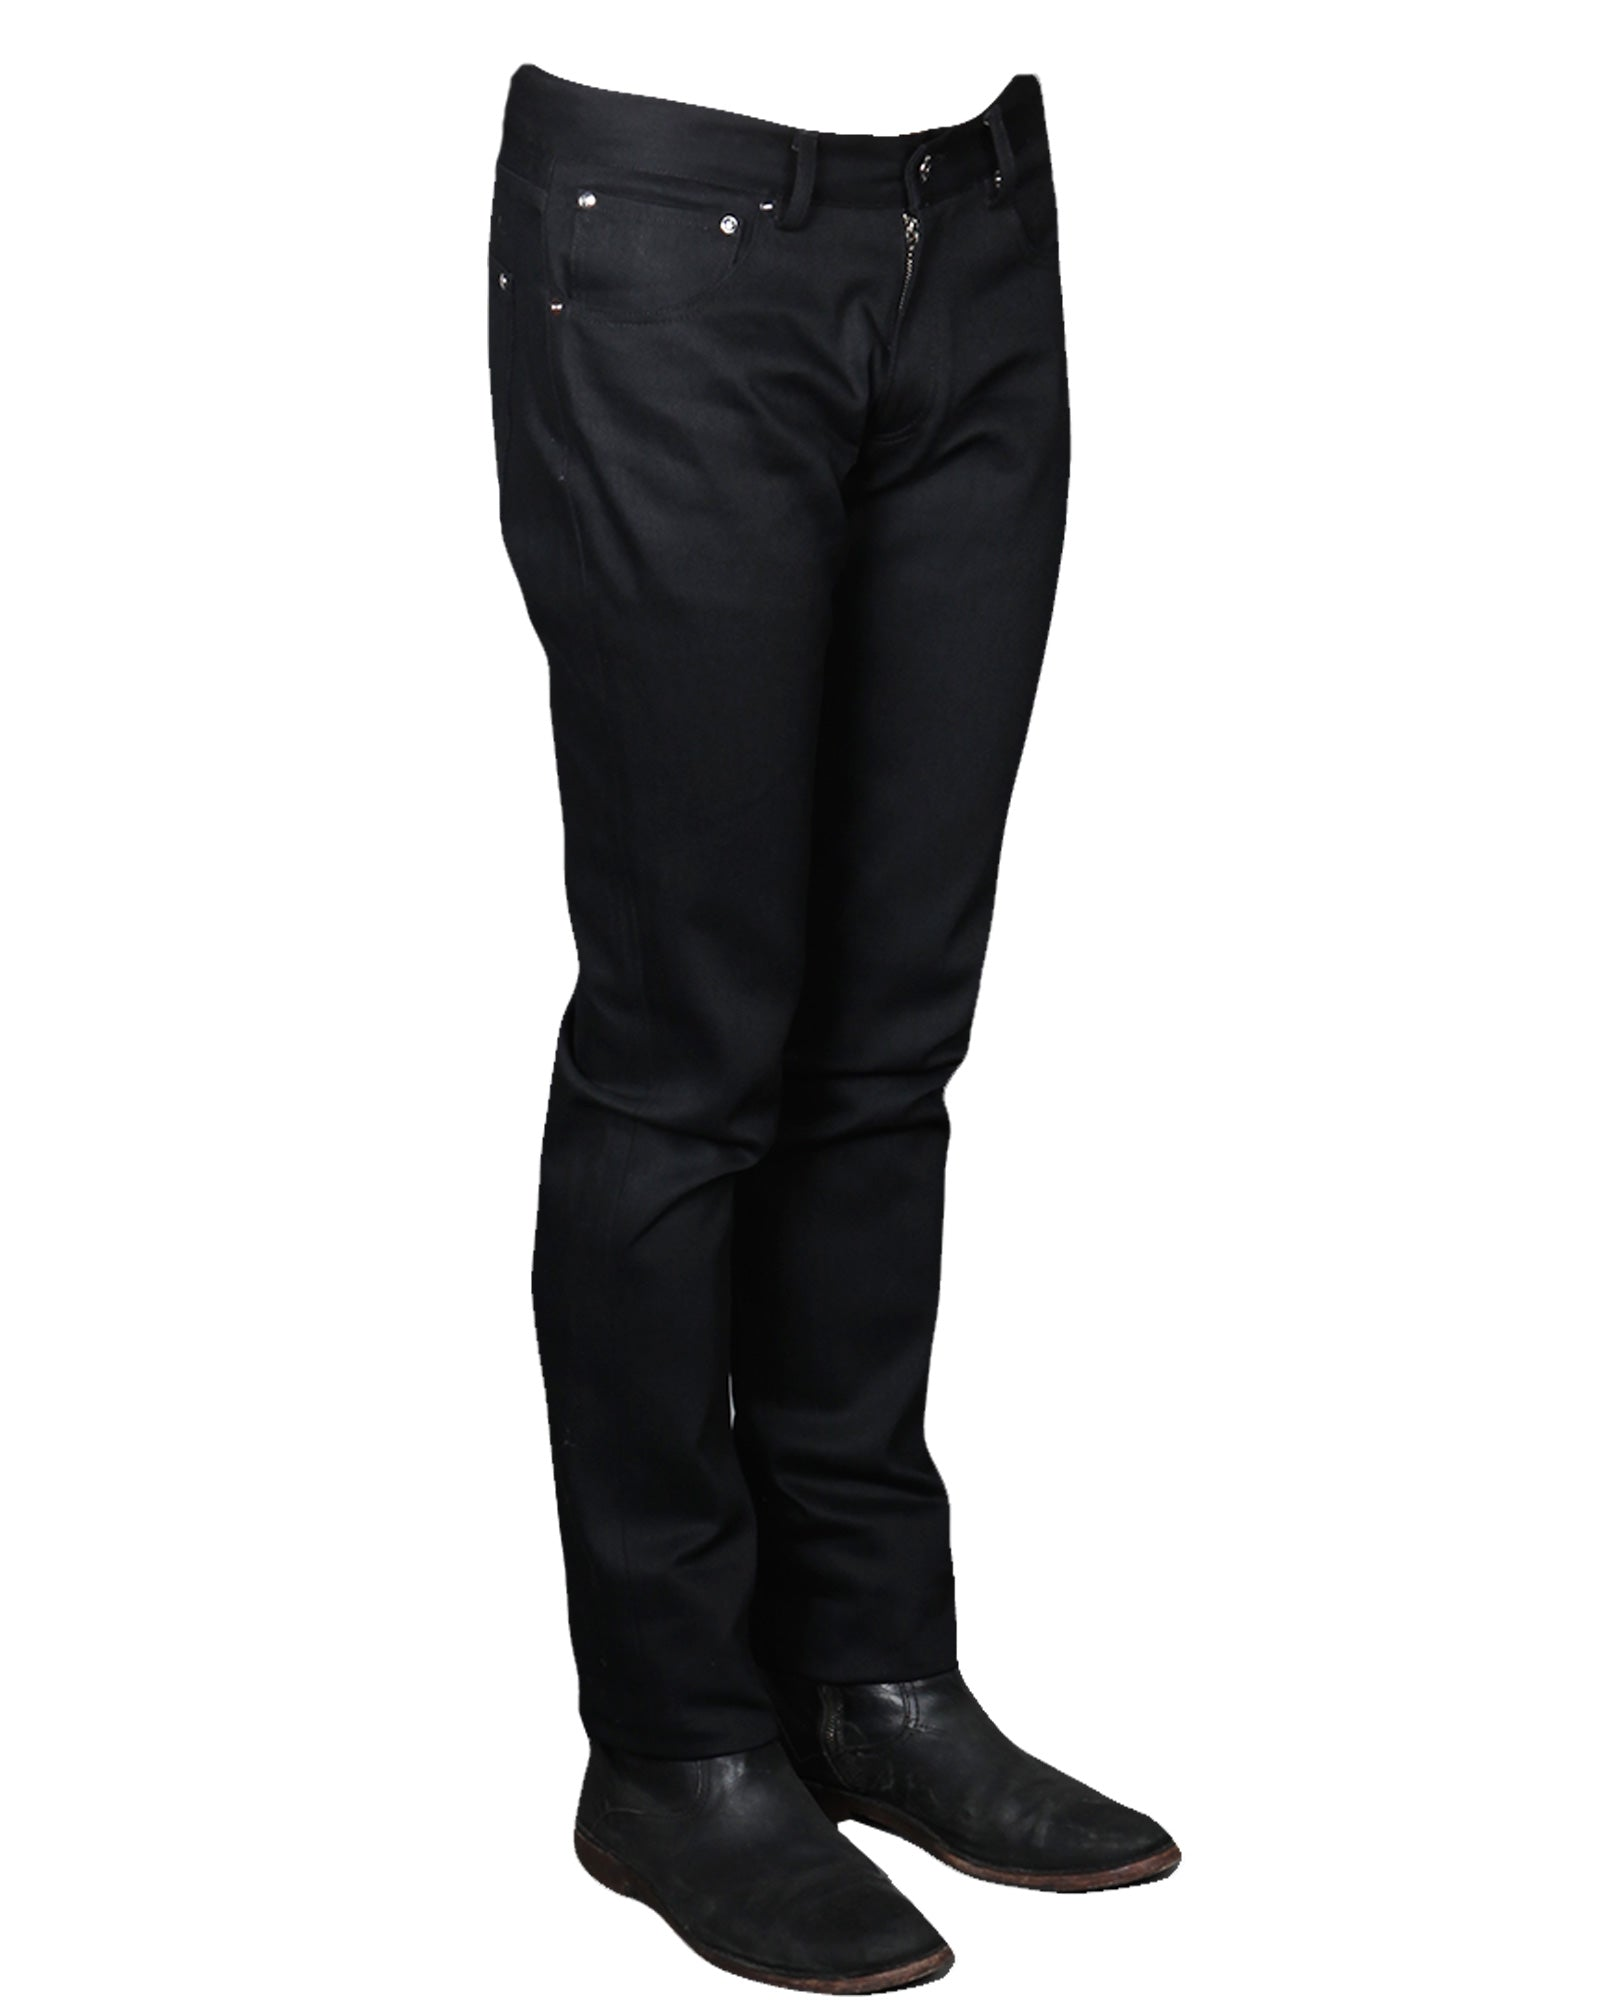 BILLY 19 // BLACK Men's Denim Jeans By Robert James